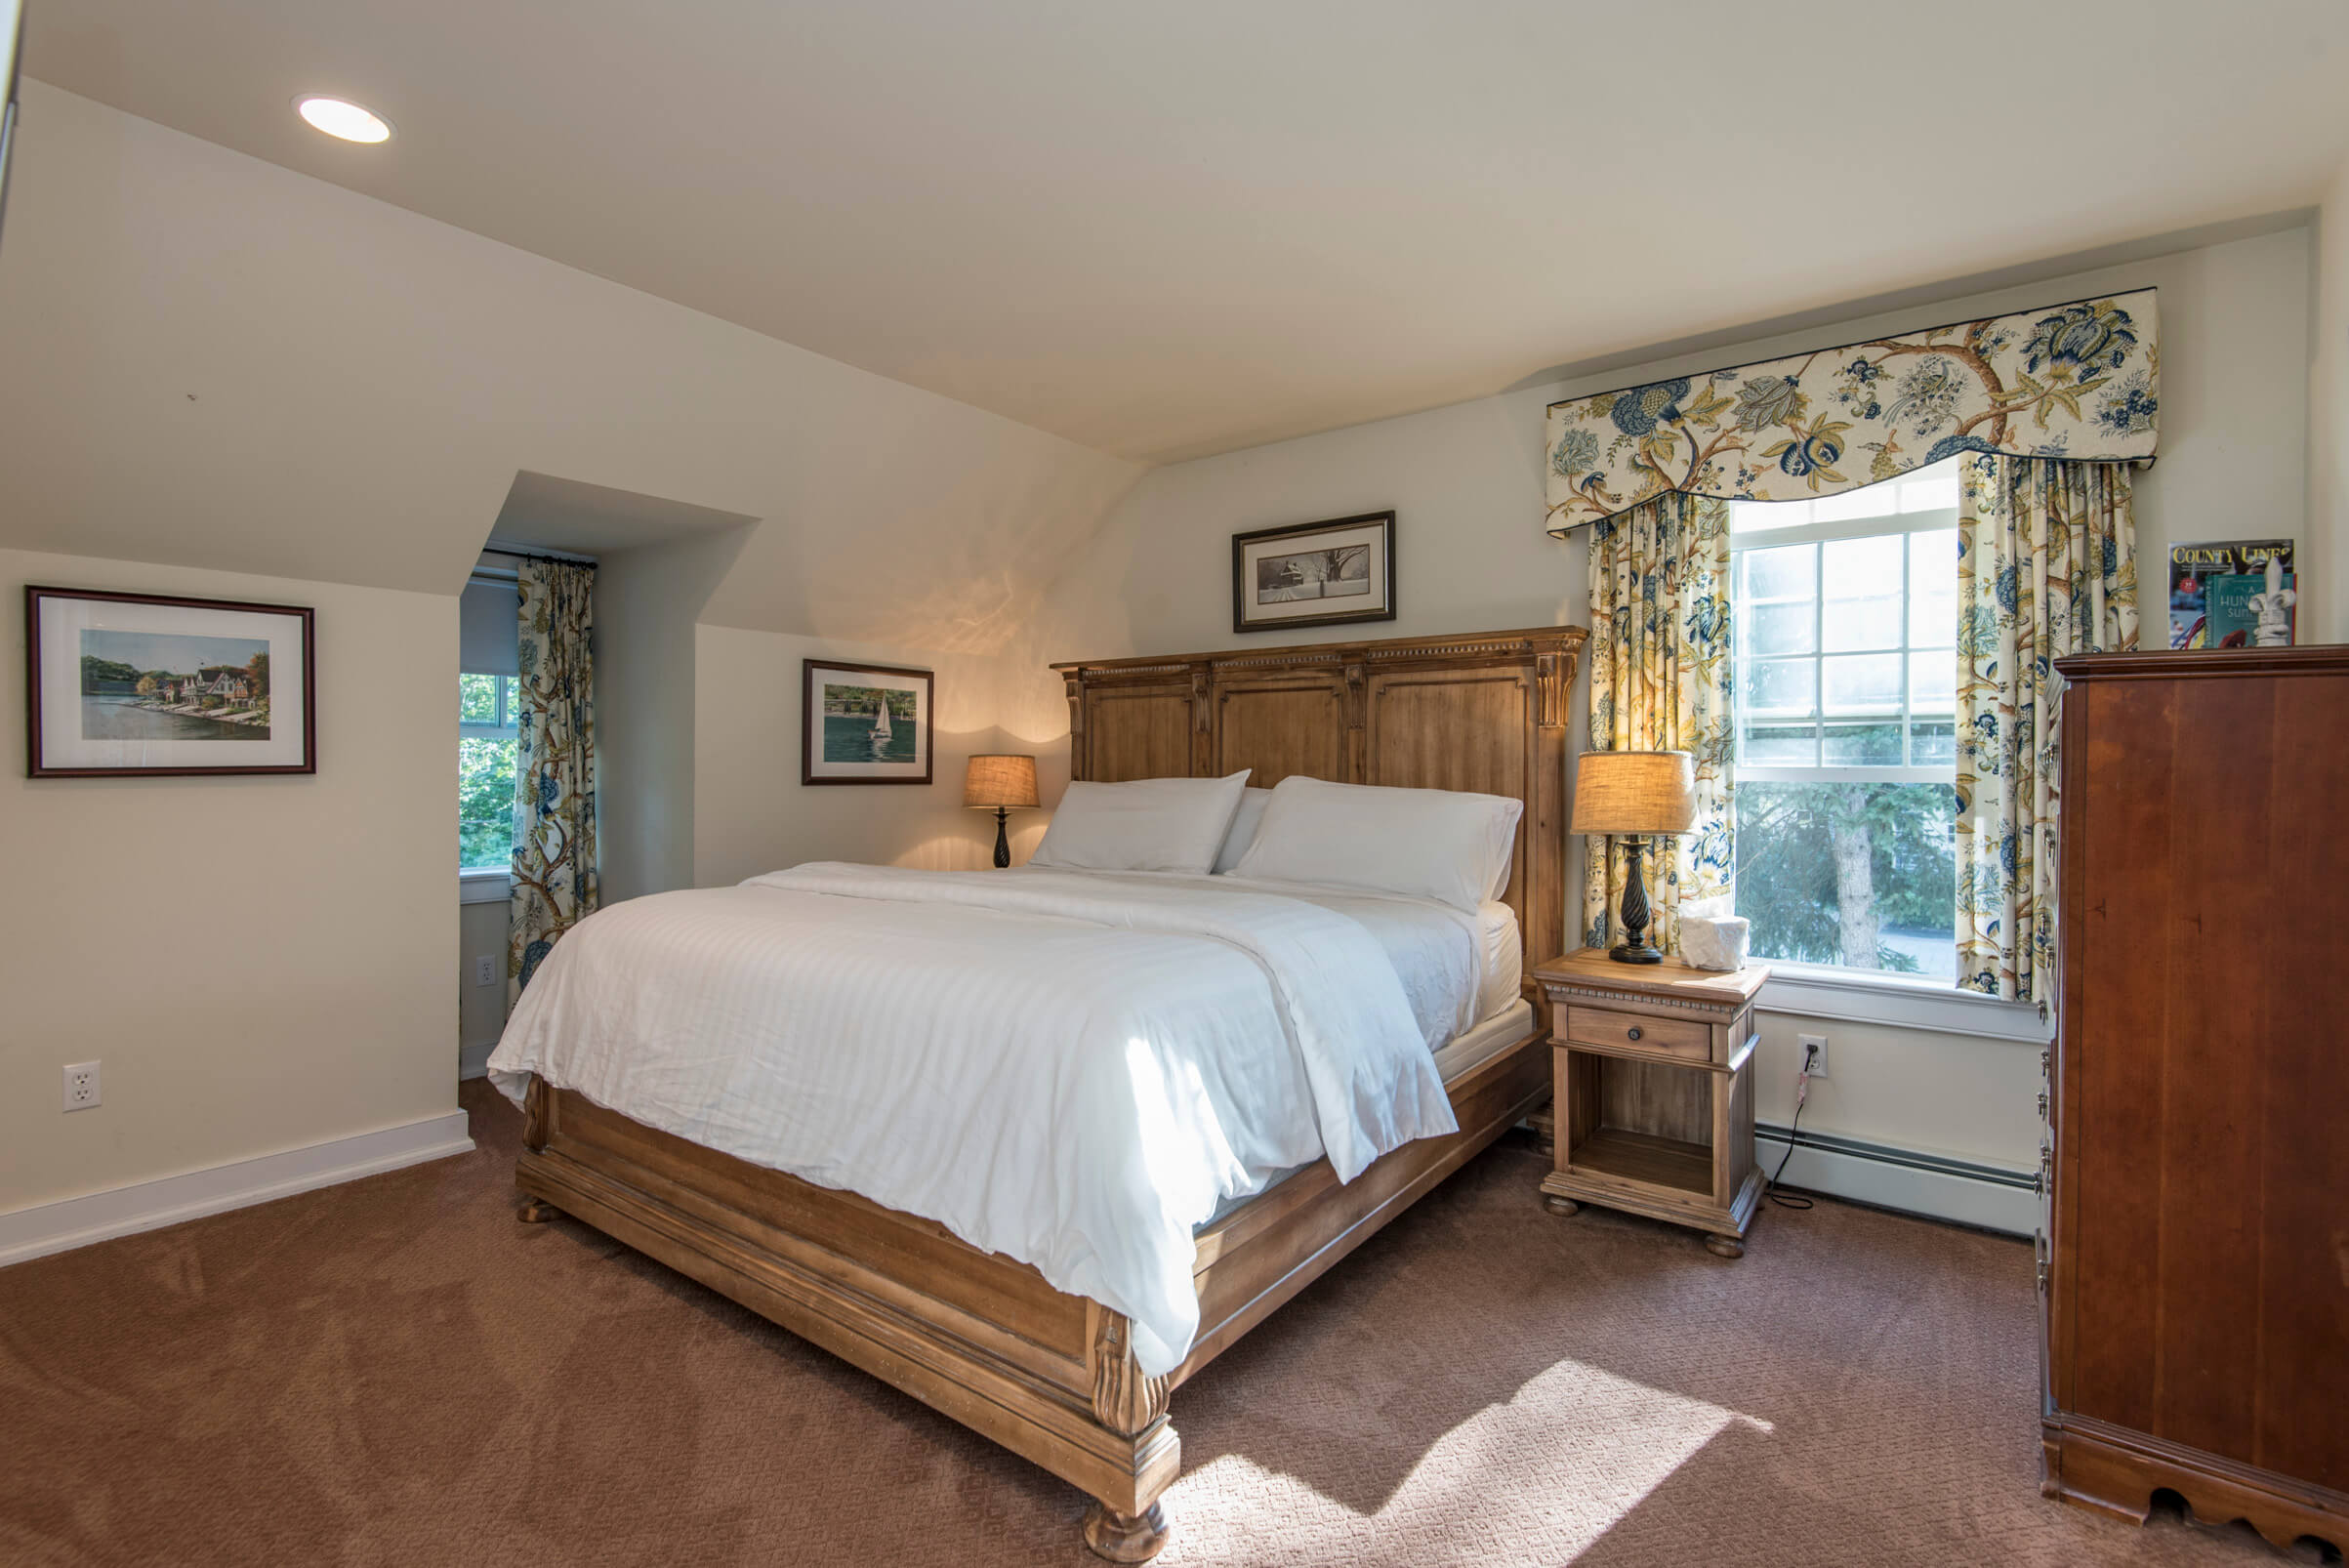 Photo of Sweetwater Cottage room at Grace Winery